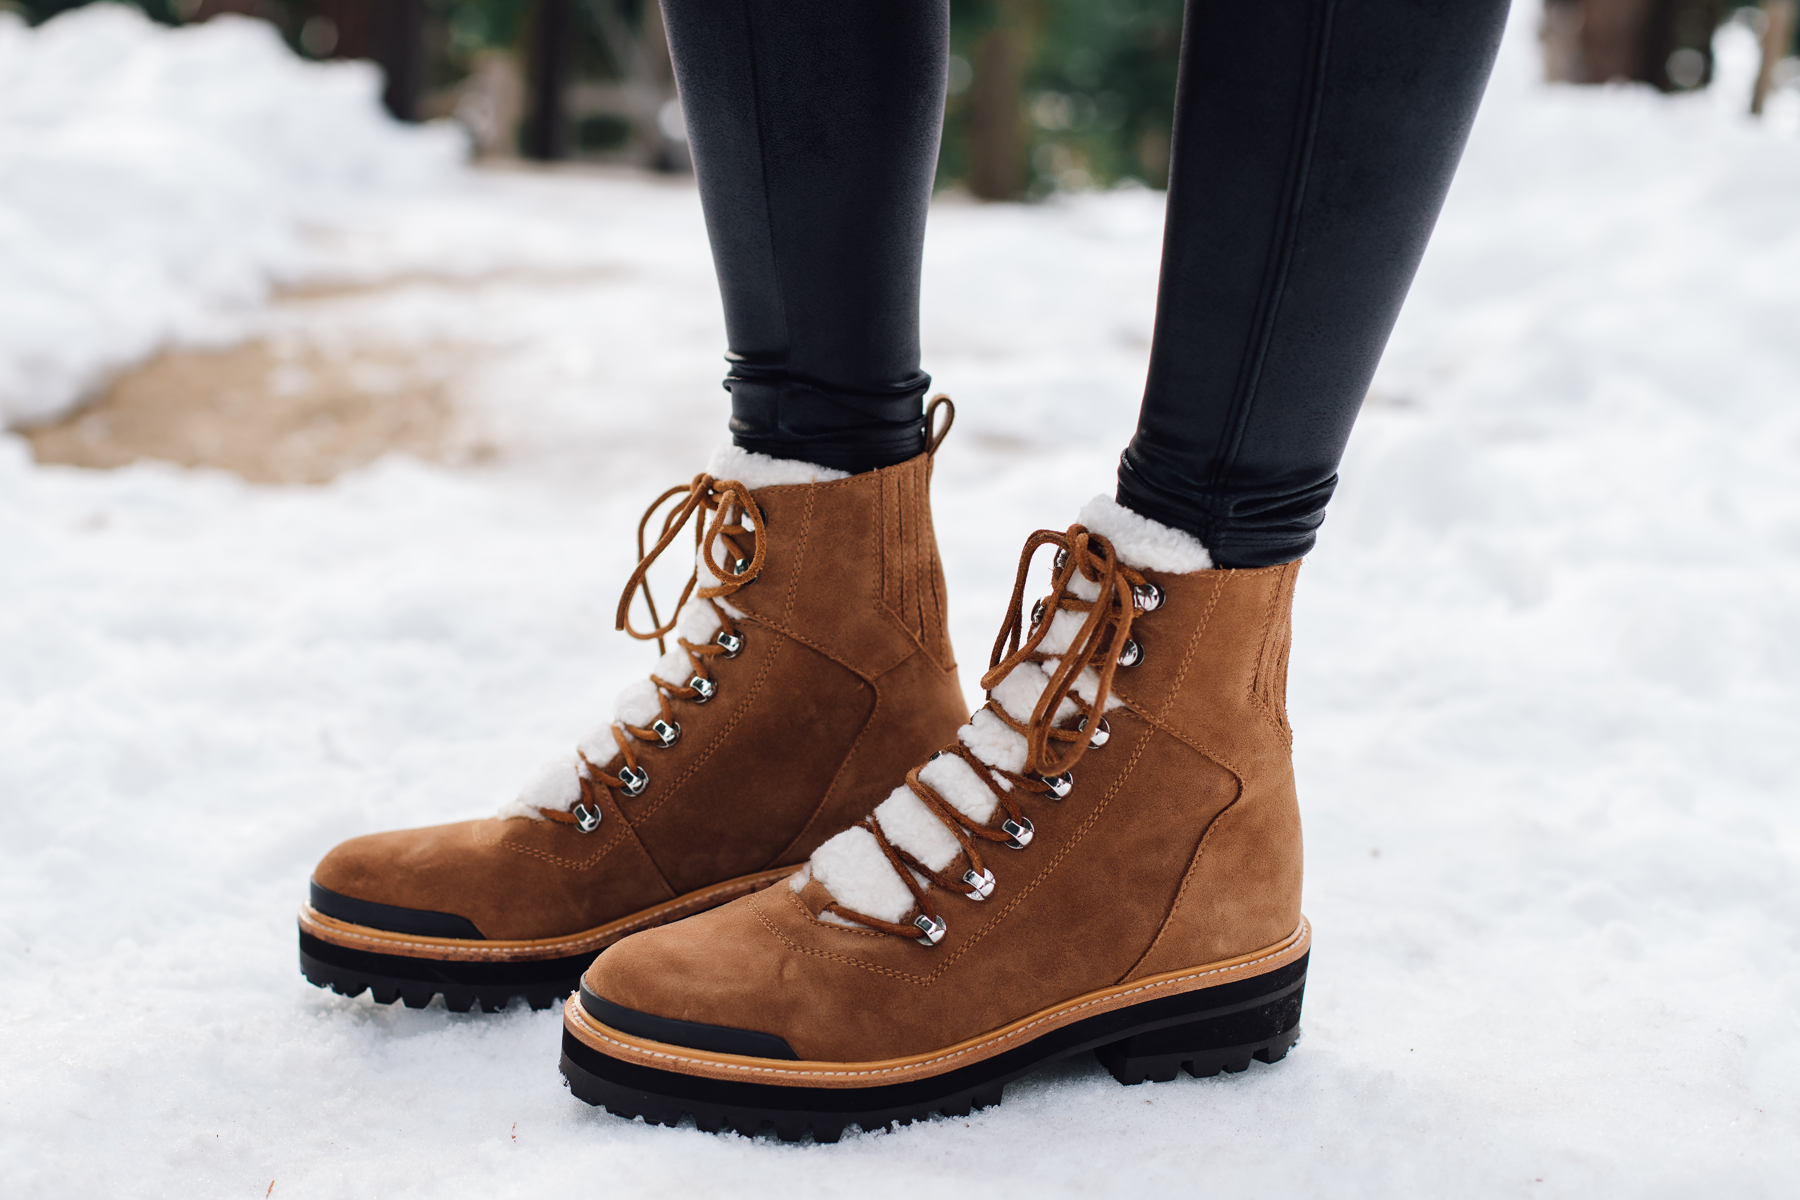 Fashion Jackson wearing Marc Fisher Shearling Brown Lace Up Booties